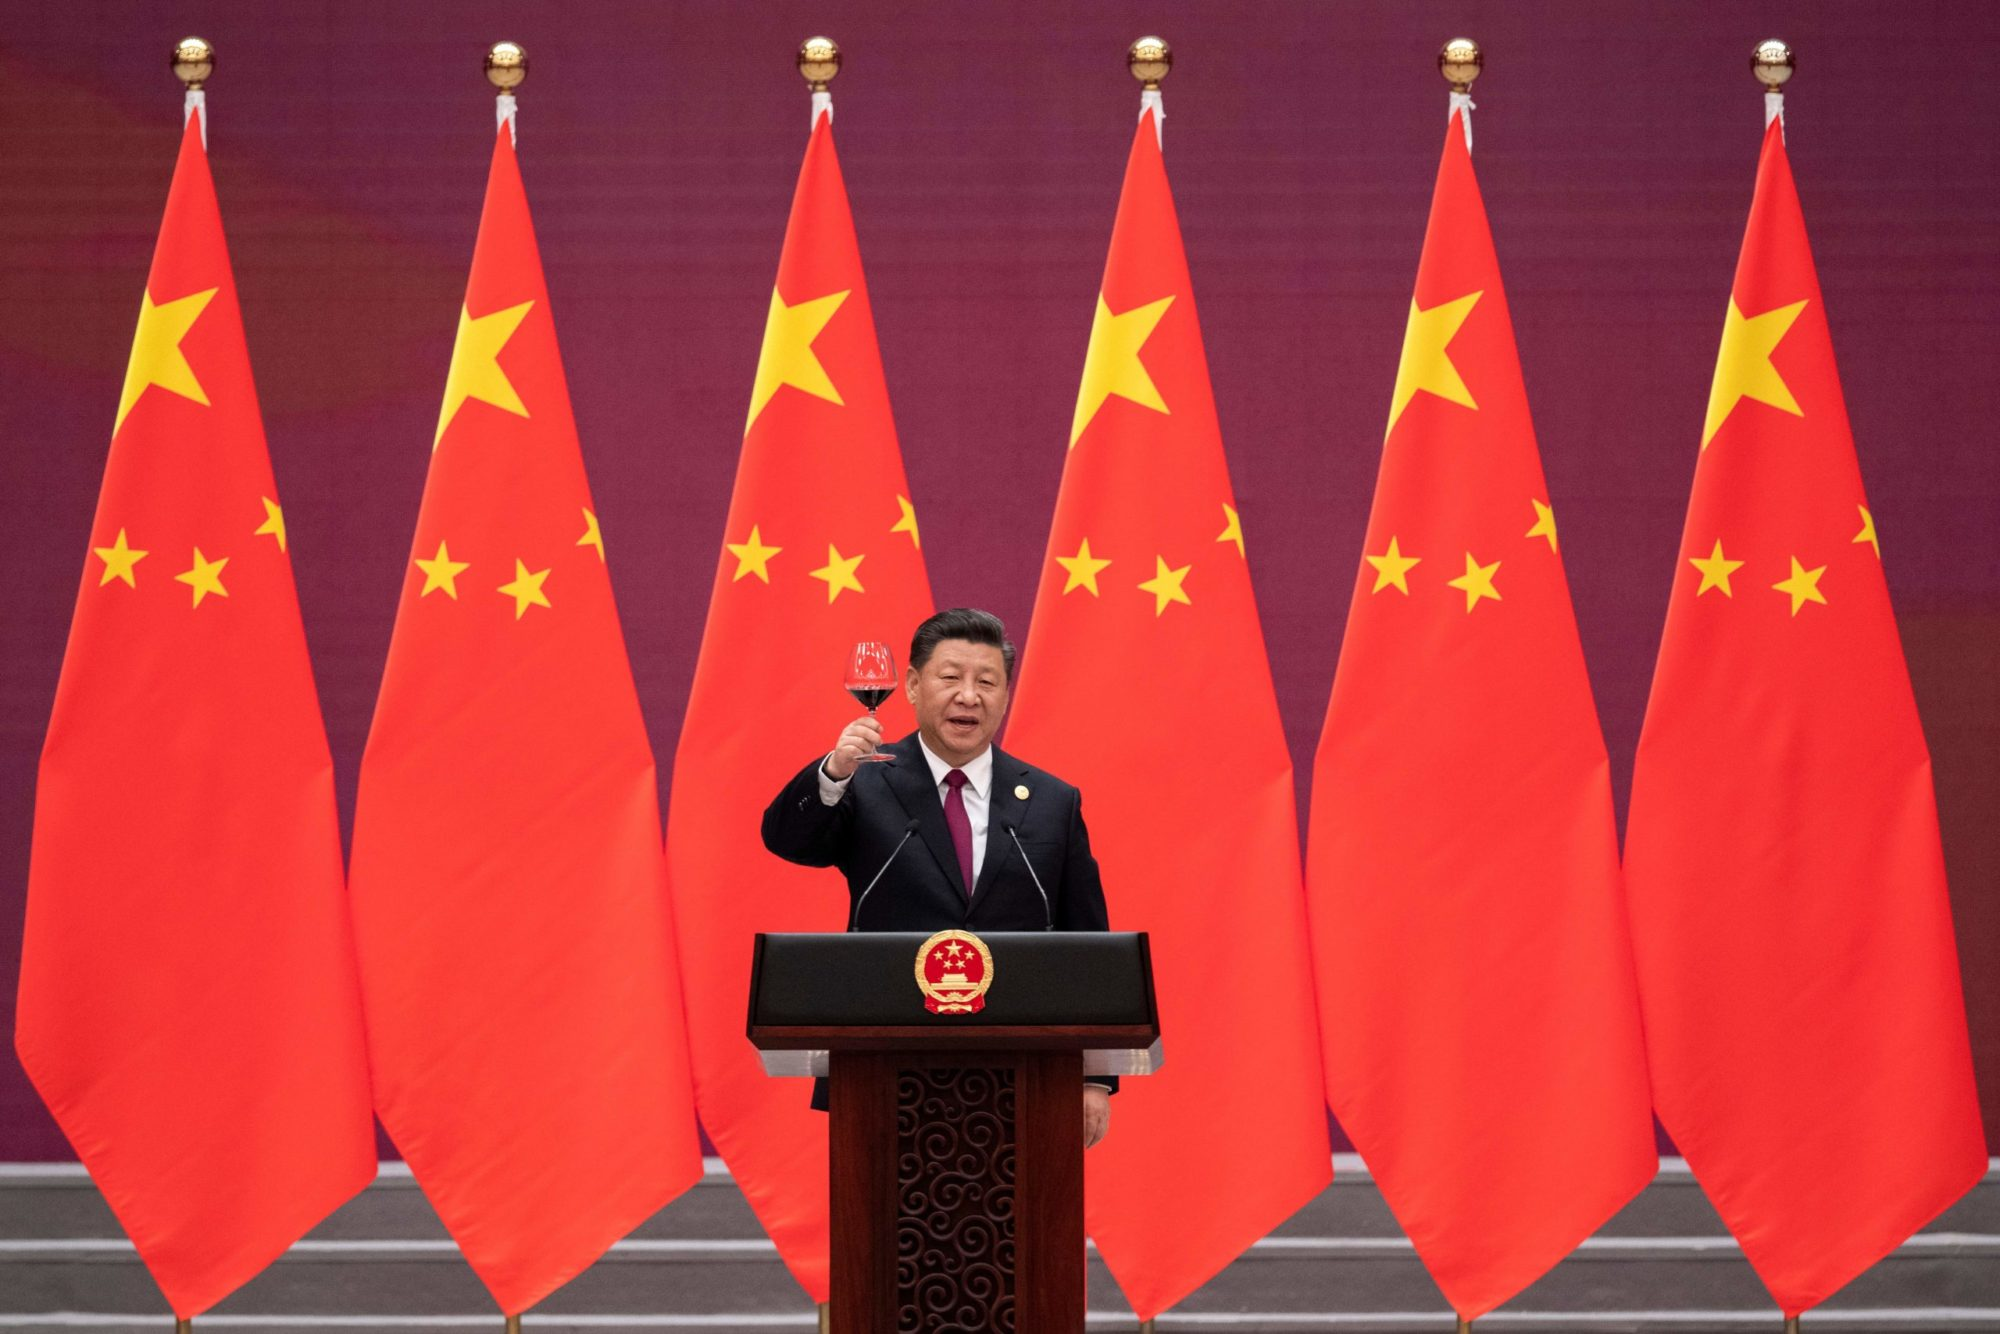 Xi Jinping cheers a glass of wine at a podium; ChinaPower